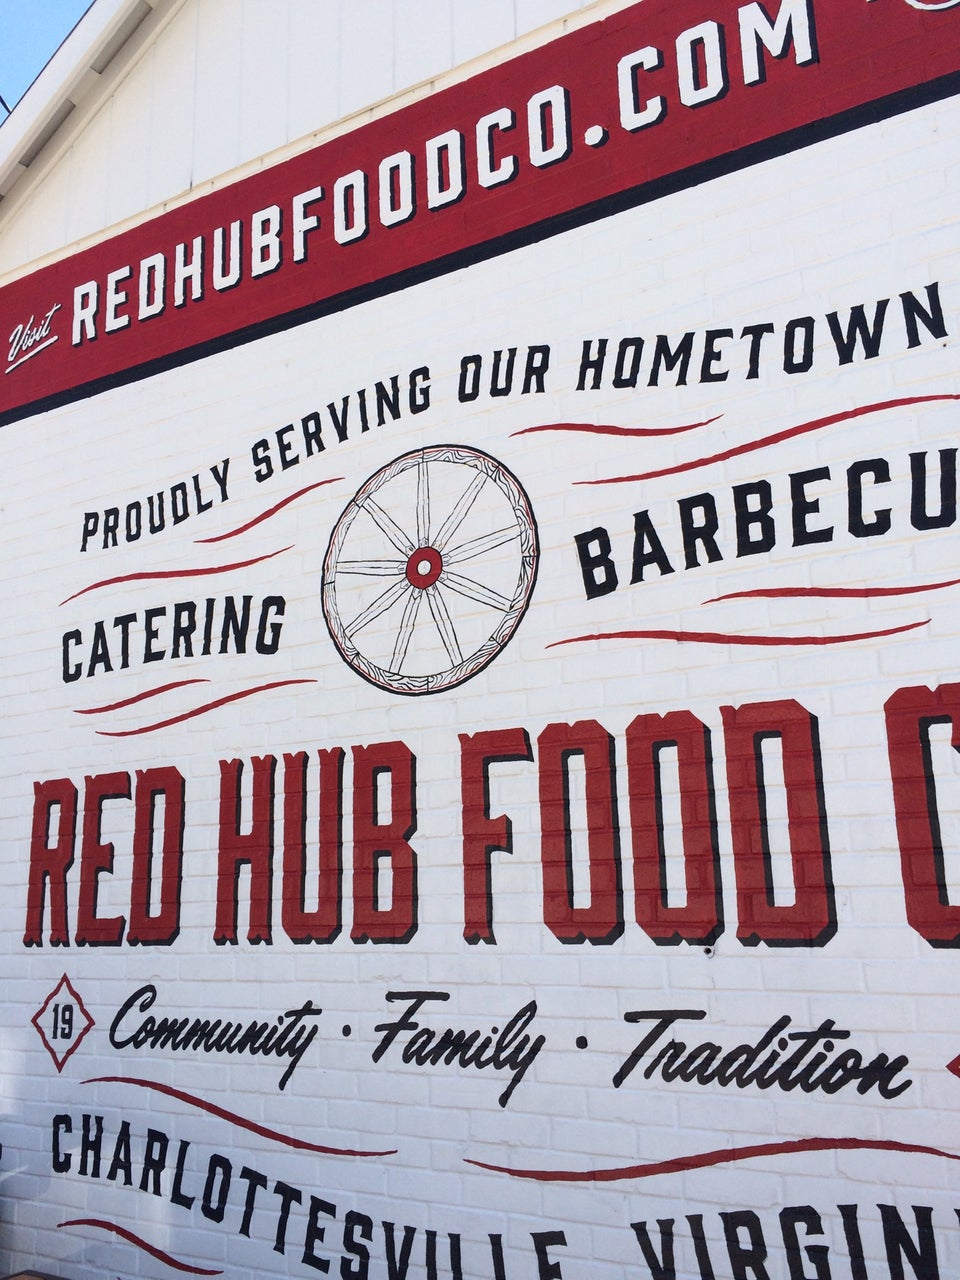 Red Hub Food Co. 202 10th St NW, Charlottesville